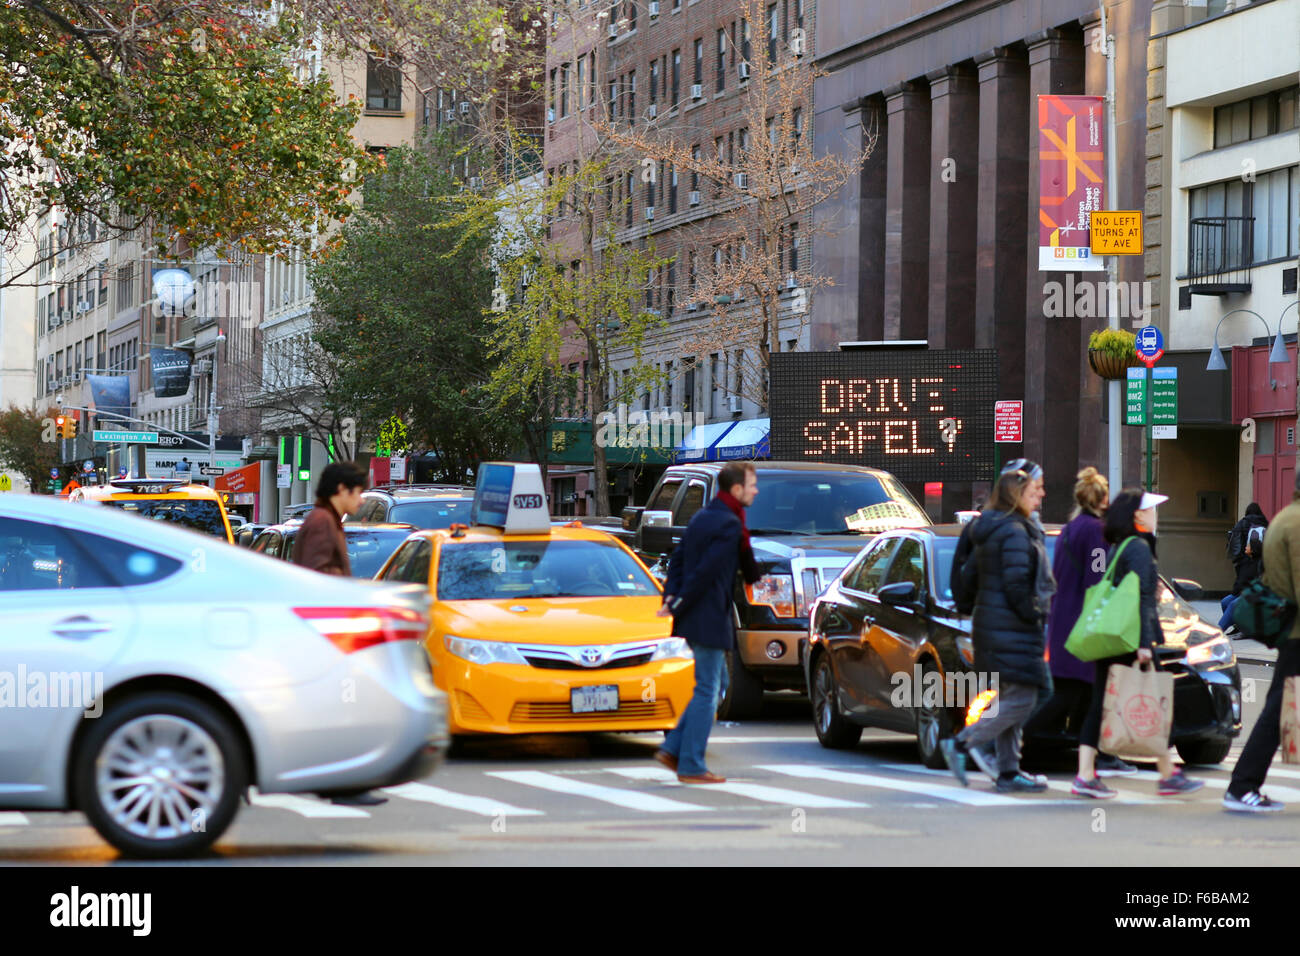 An electronic sign flashes Drive Safely near a New York City intersection - Stock Image